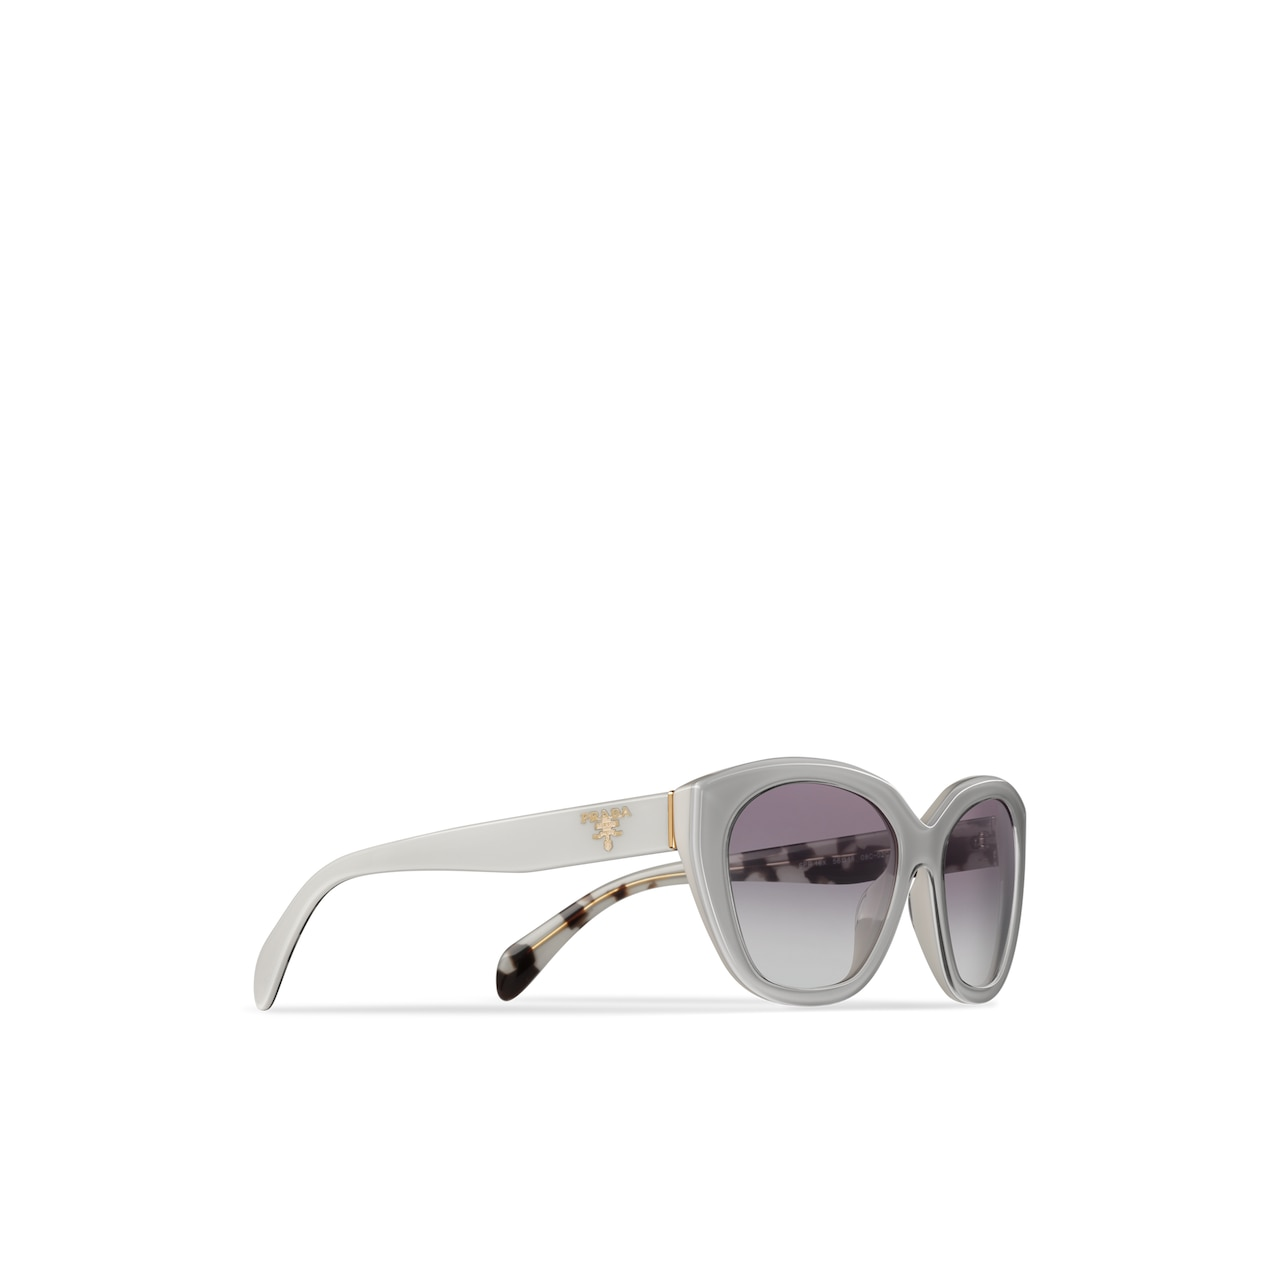 Prada Prada Eyewear Collection sunglasses 3